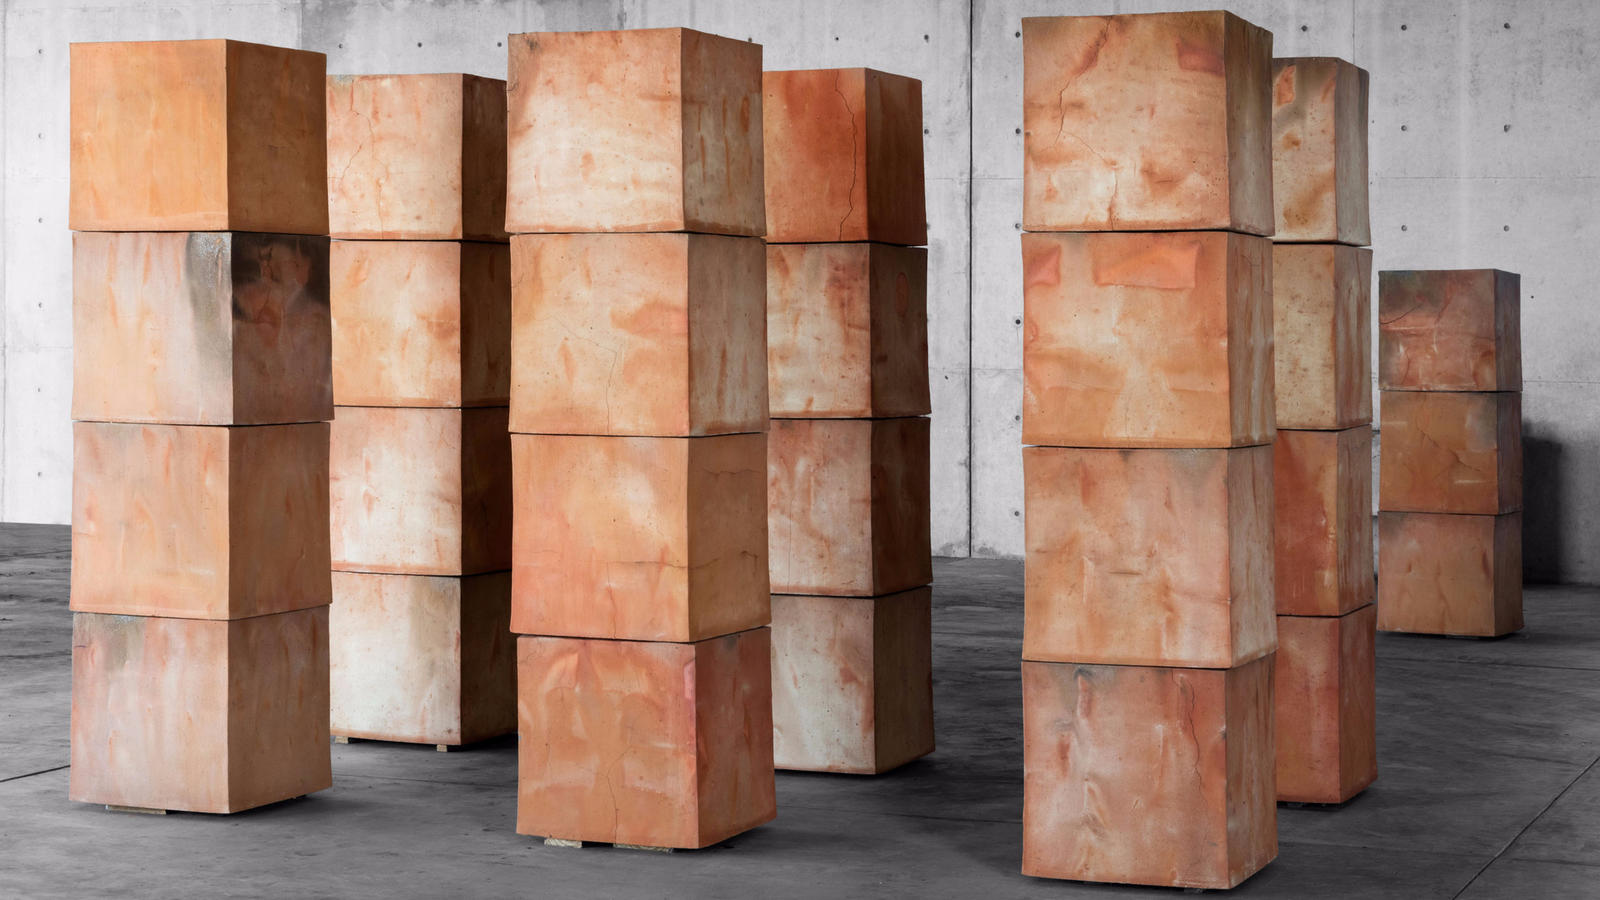 Untitled clay cubes by Bosco Sodi, on view as part of a pop-up exhibition in Los Angeles.